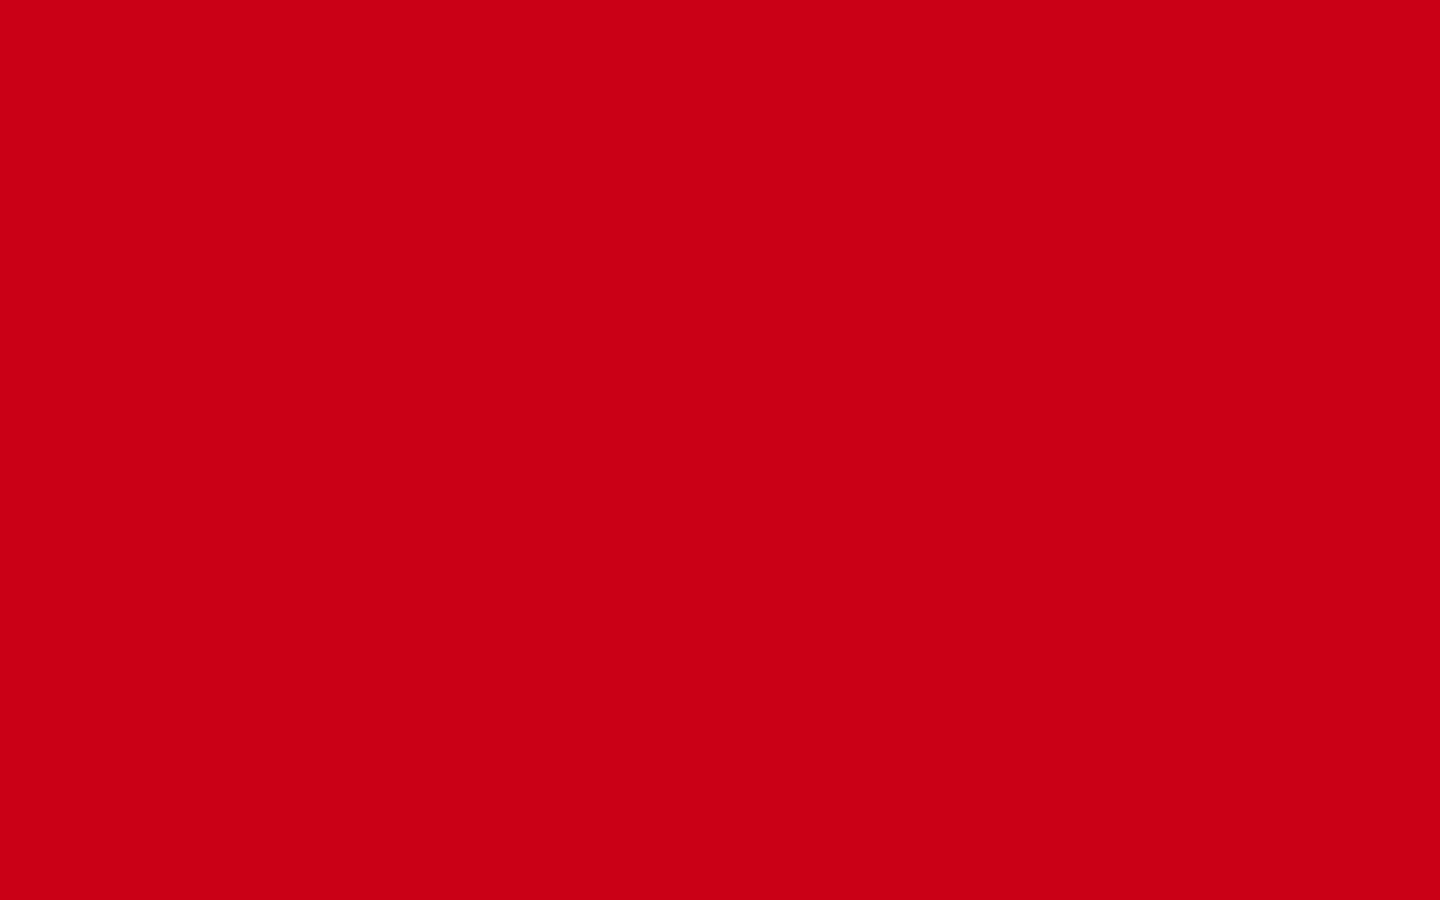 1440x900 Harvard Crimson Solid Color Background